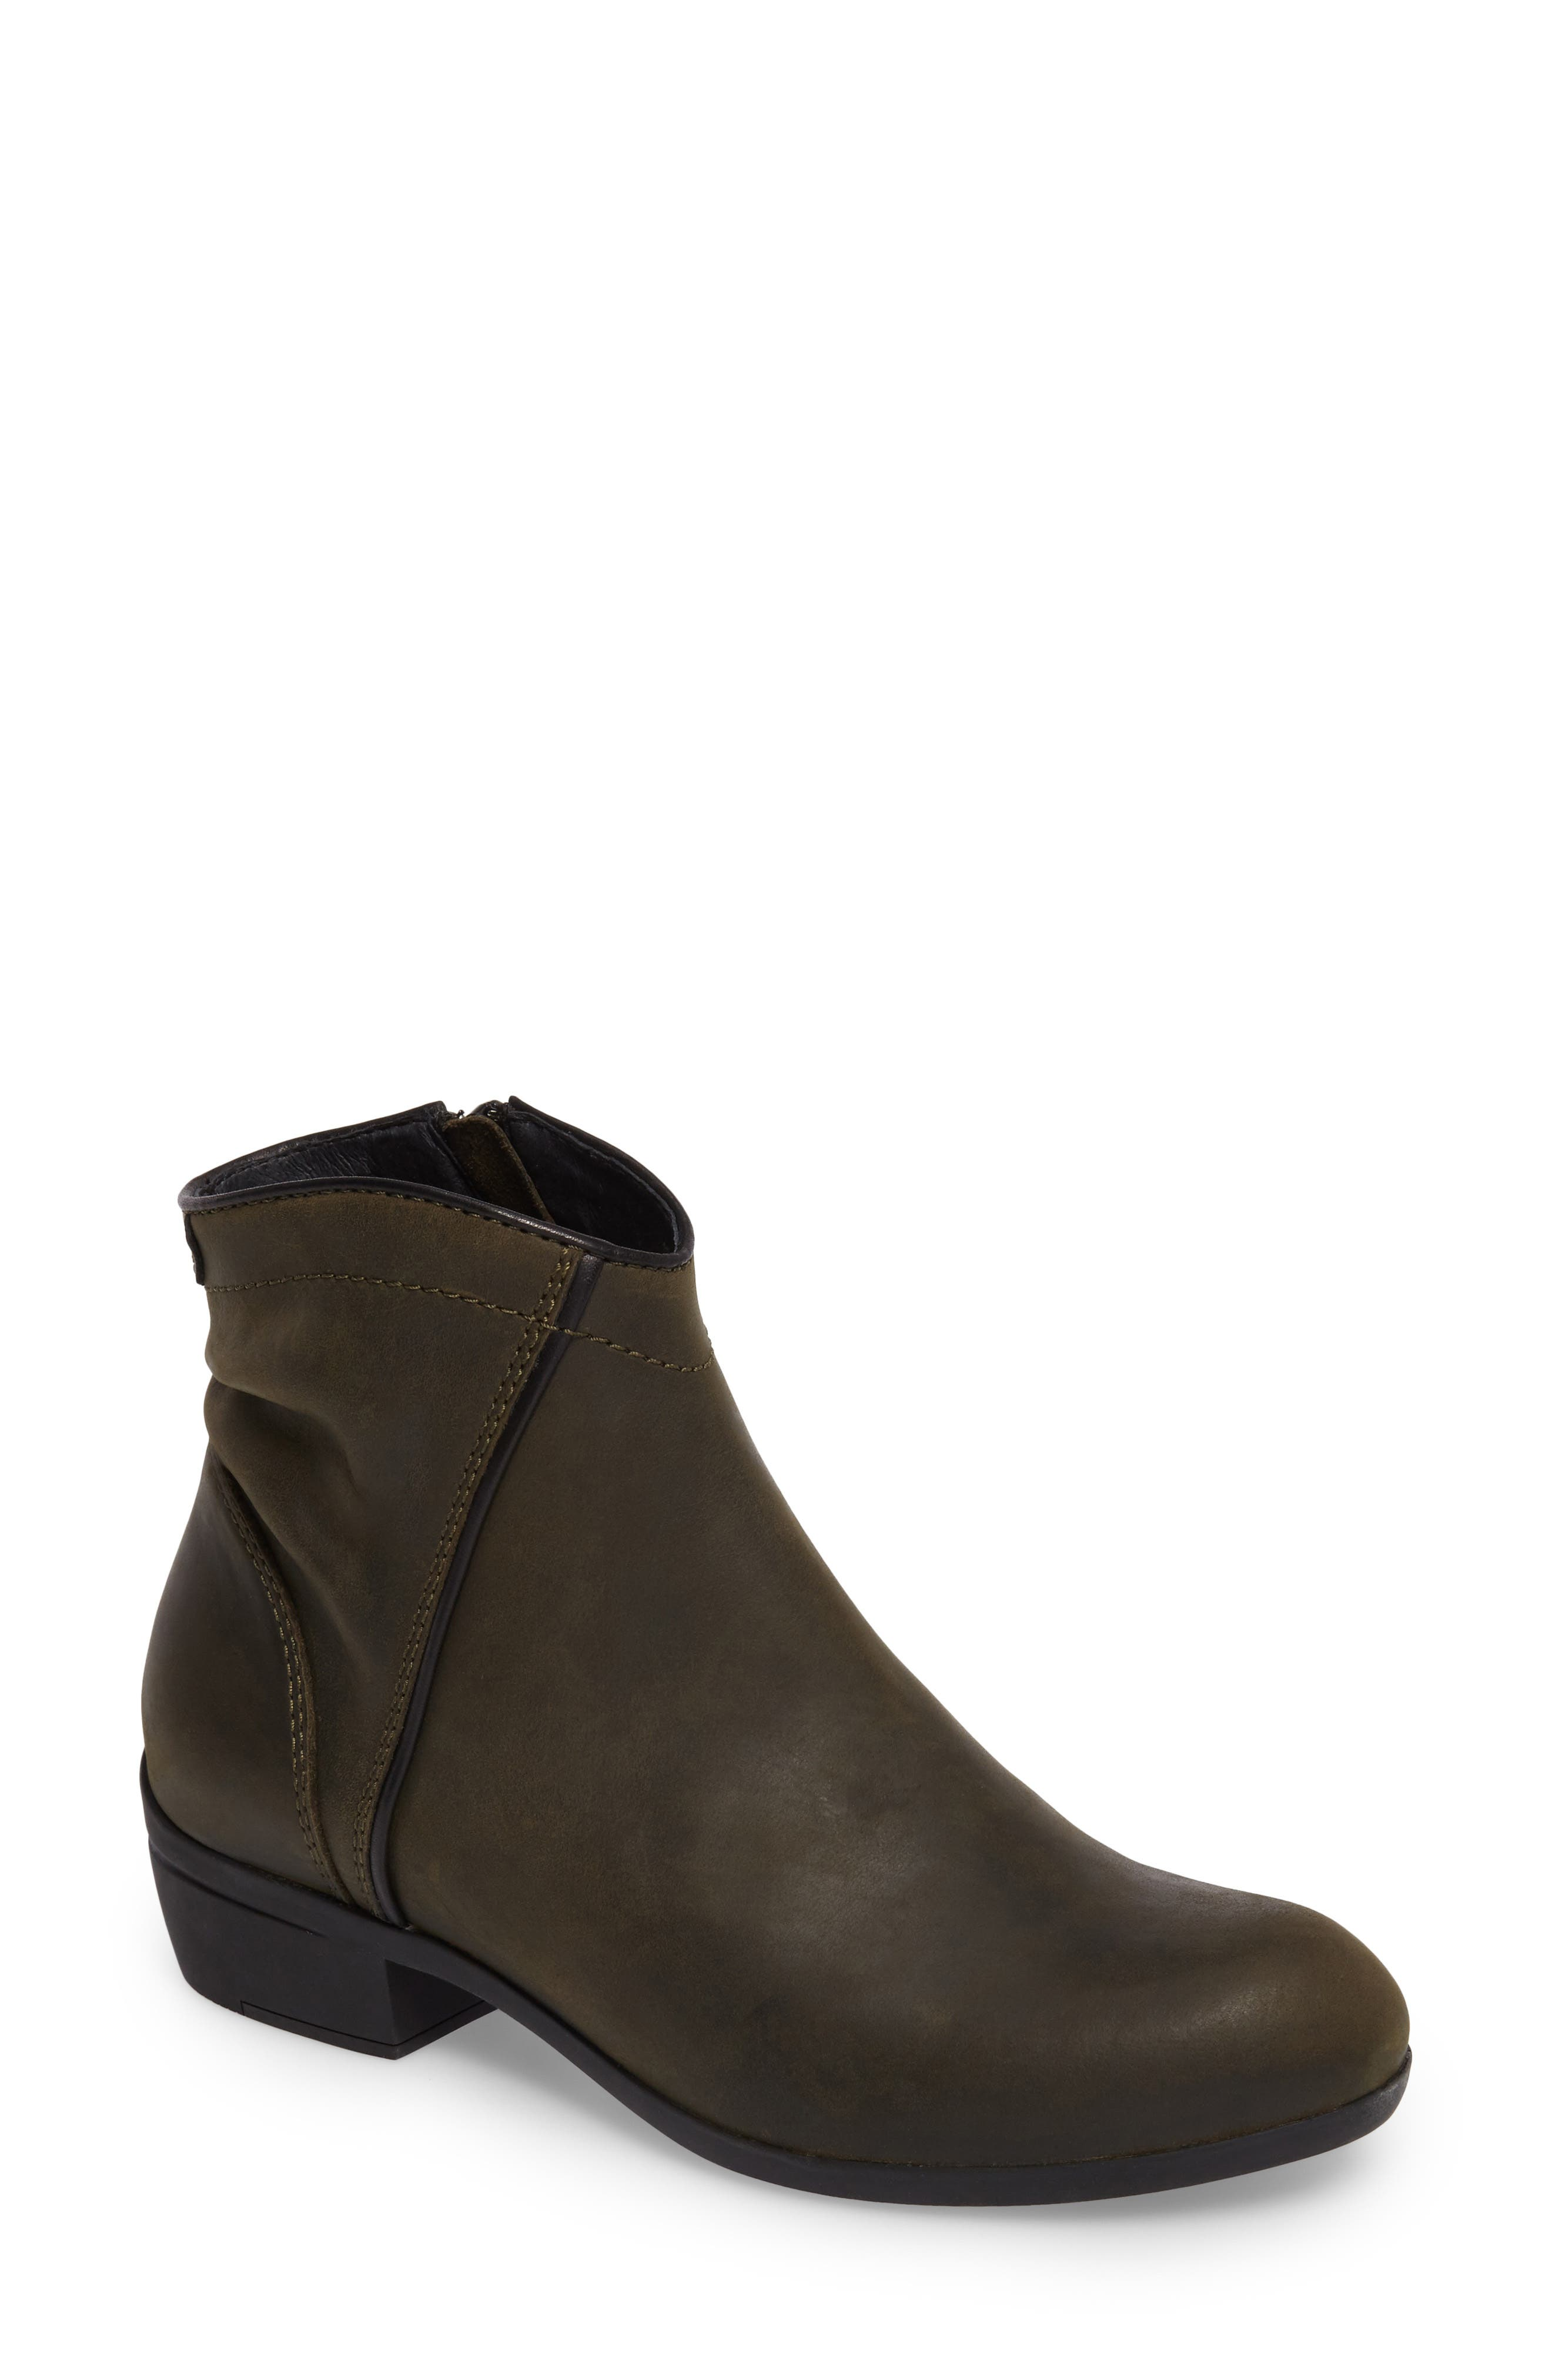 Winchester Bootie,                             Main thumbnail 1, color,                             Forest Leather